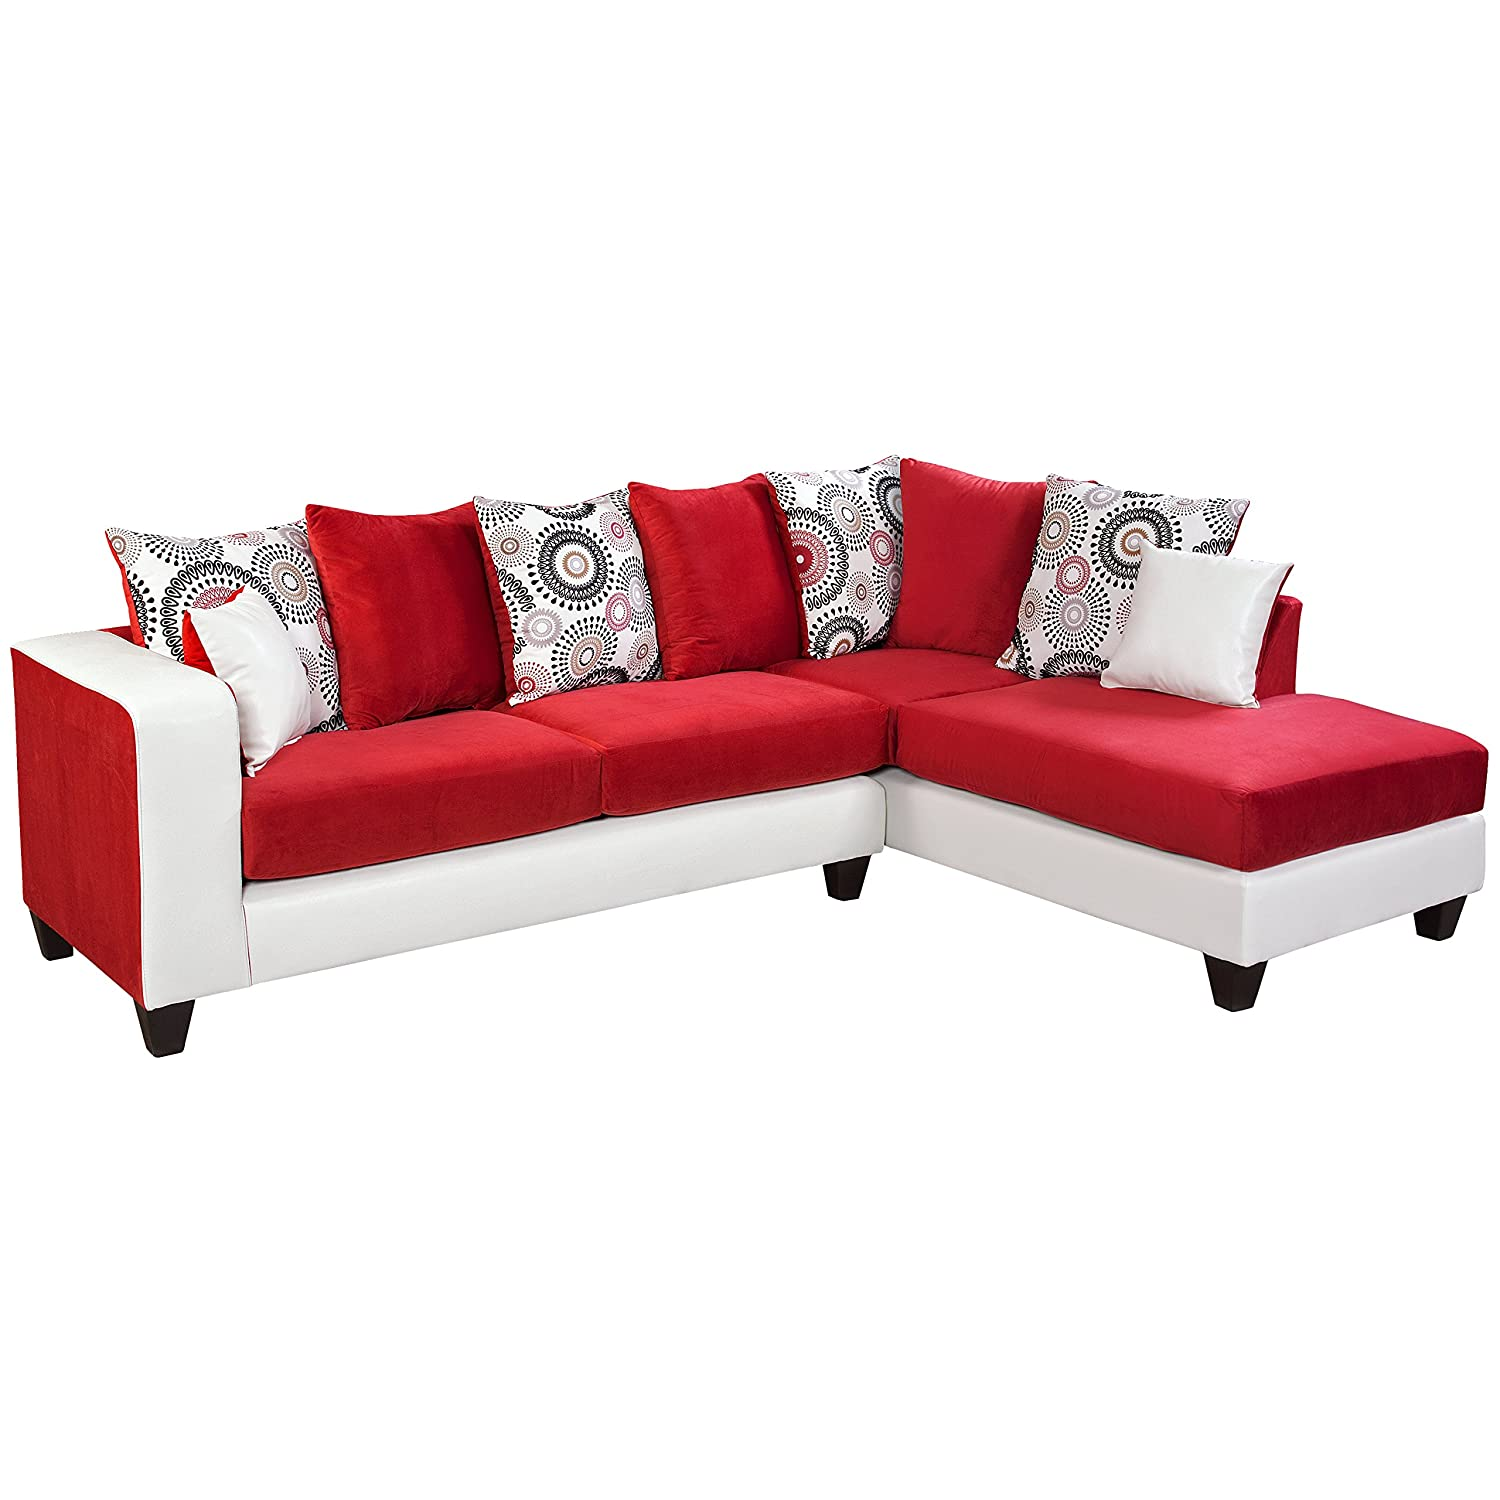 Flash Furniture Riverstone Implosion Velvet Sectional Sofa - Red